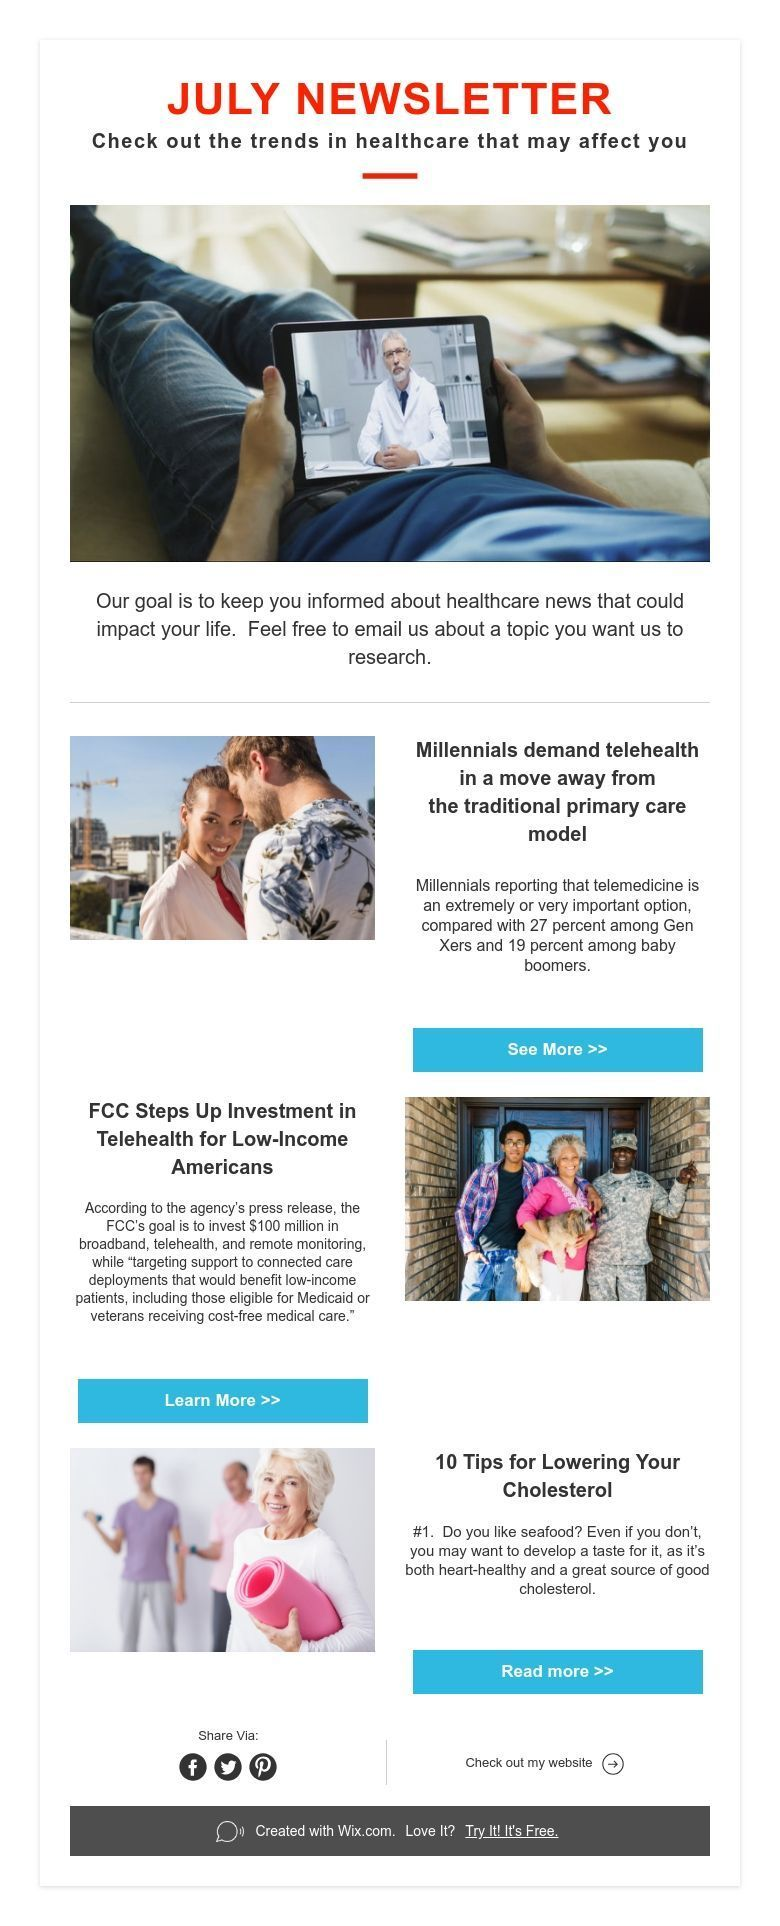 JULY NEWSLETTER Check out the trends in healthcare that